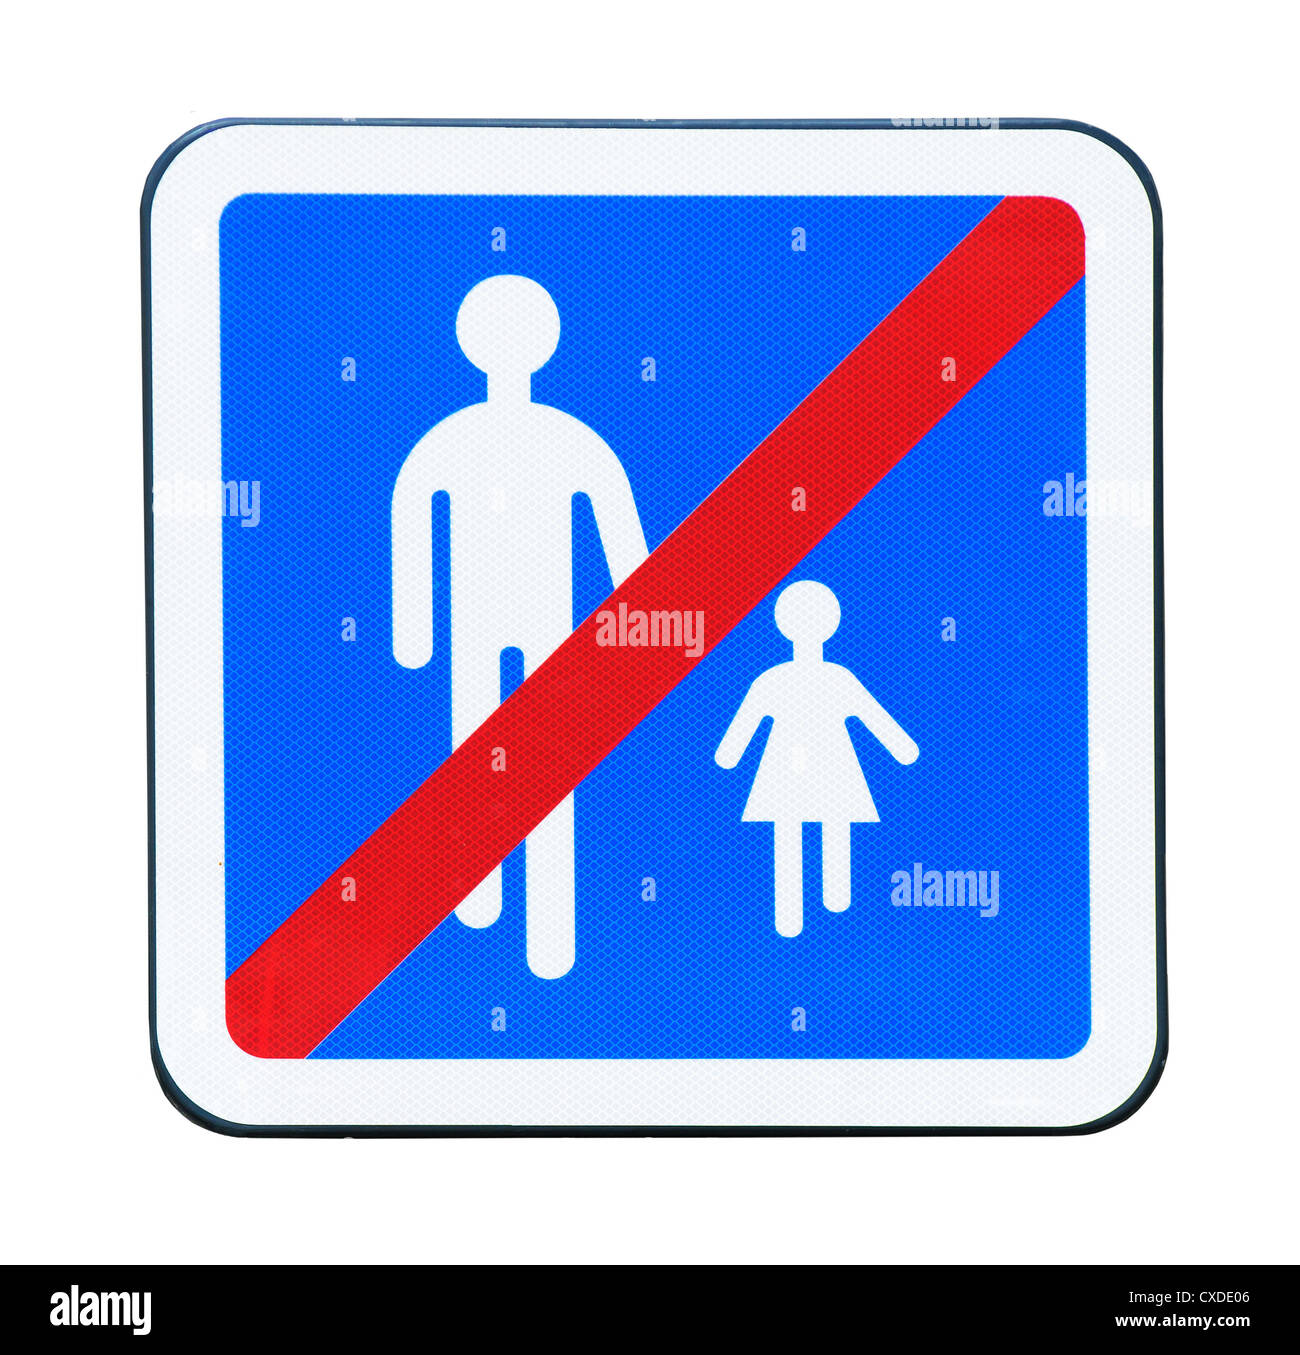 No pedestrian traffic sign - Stock Image